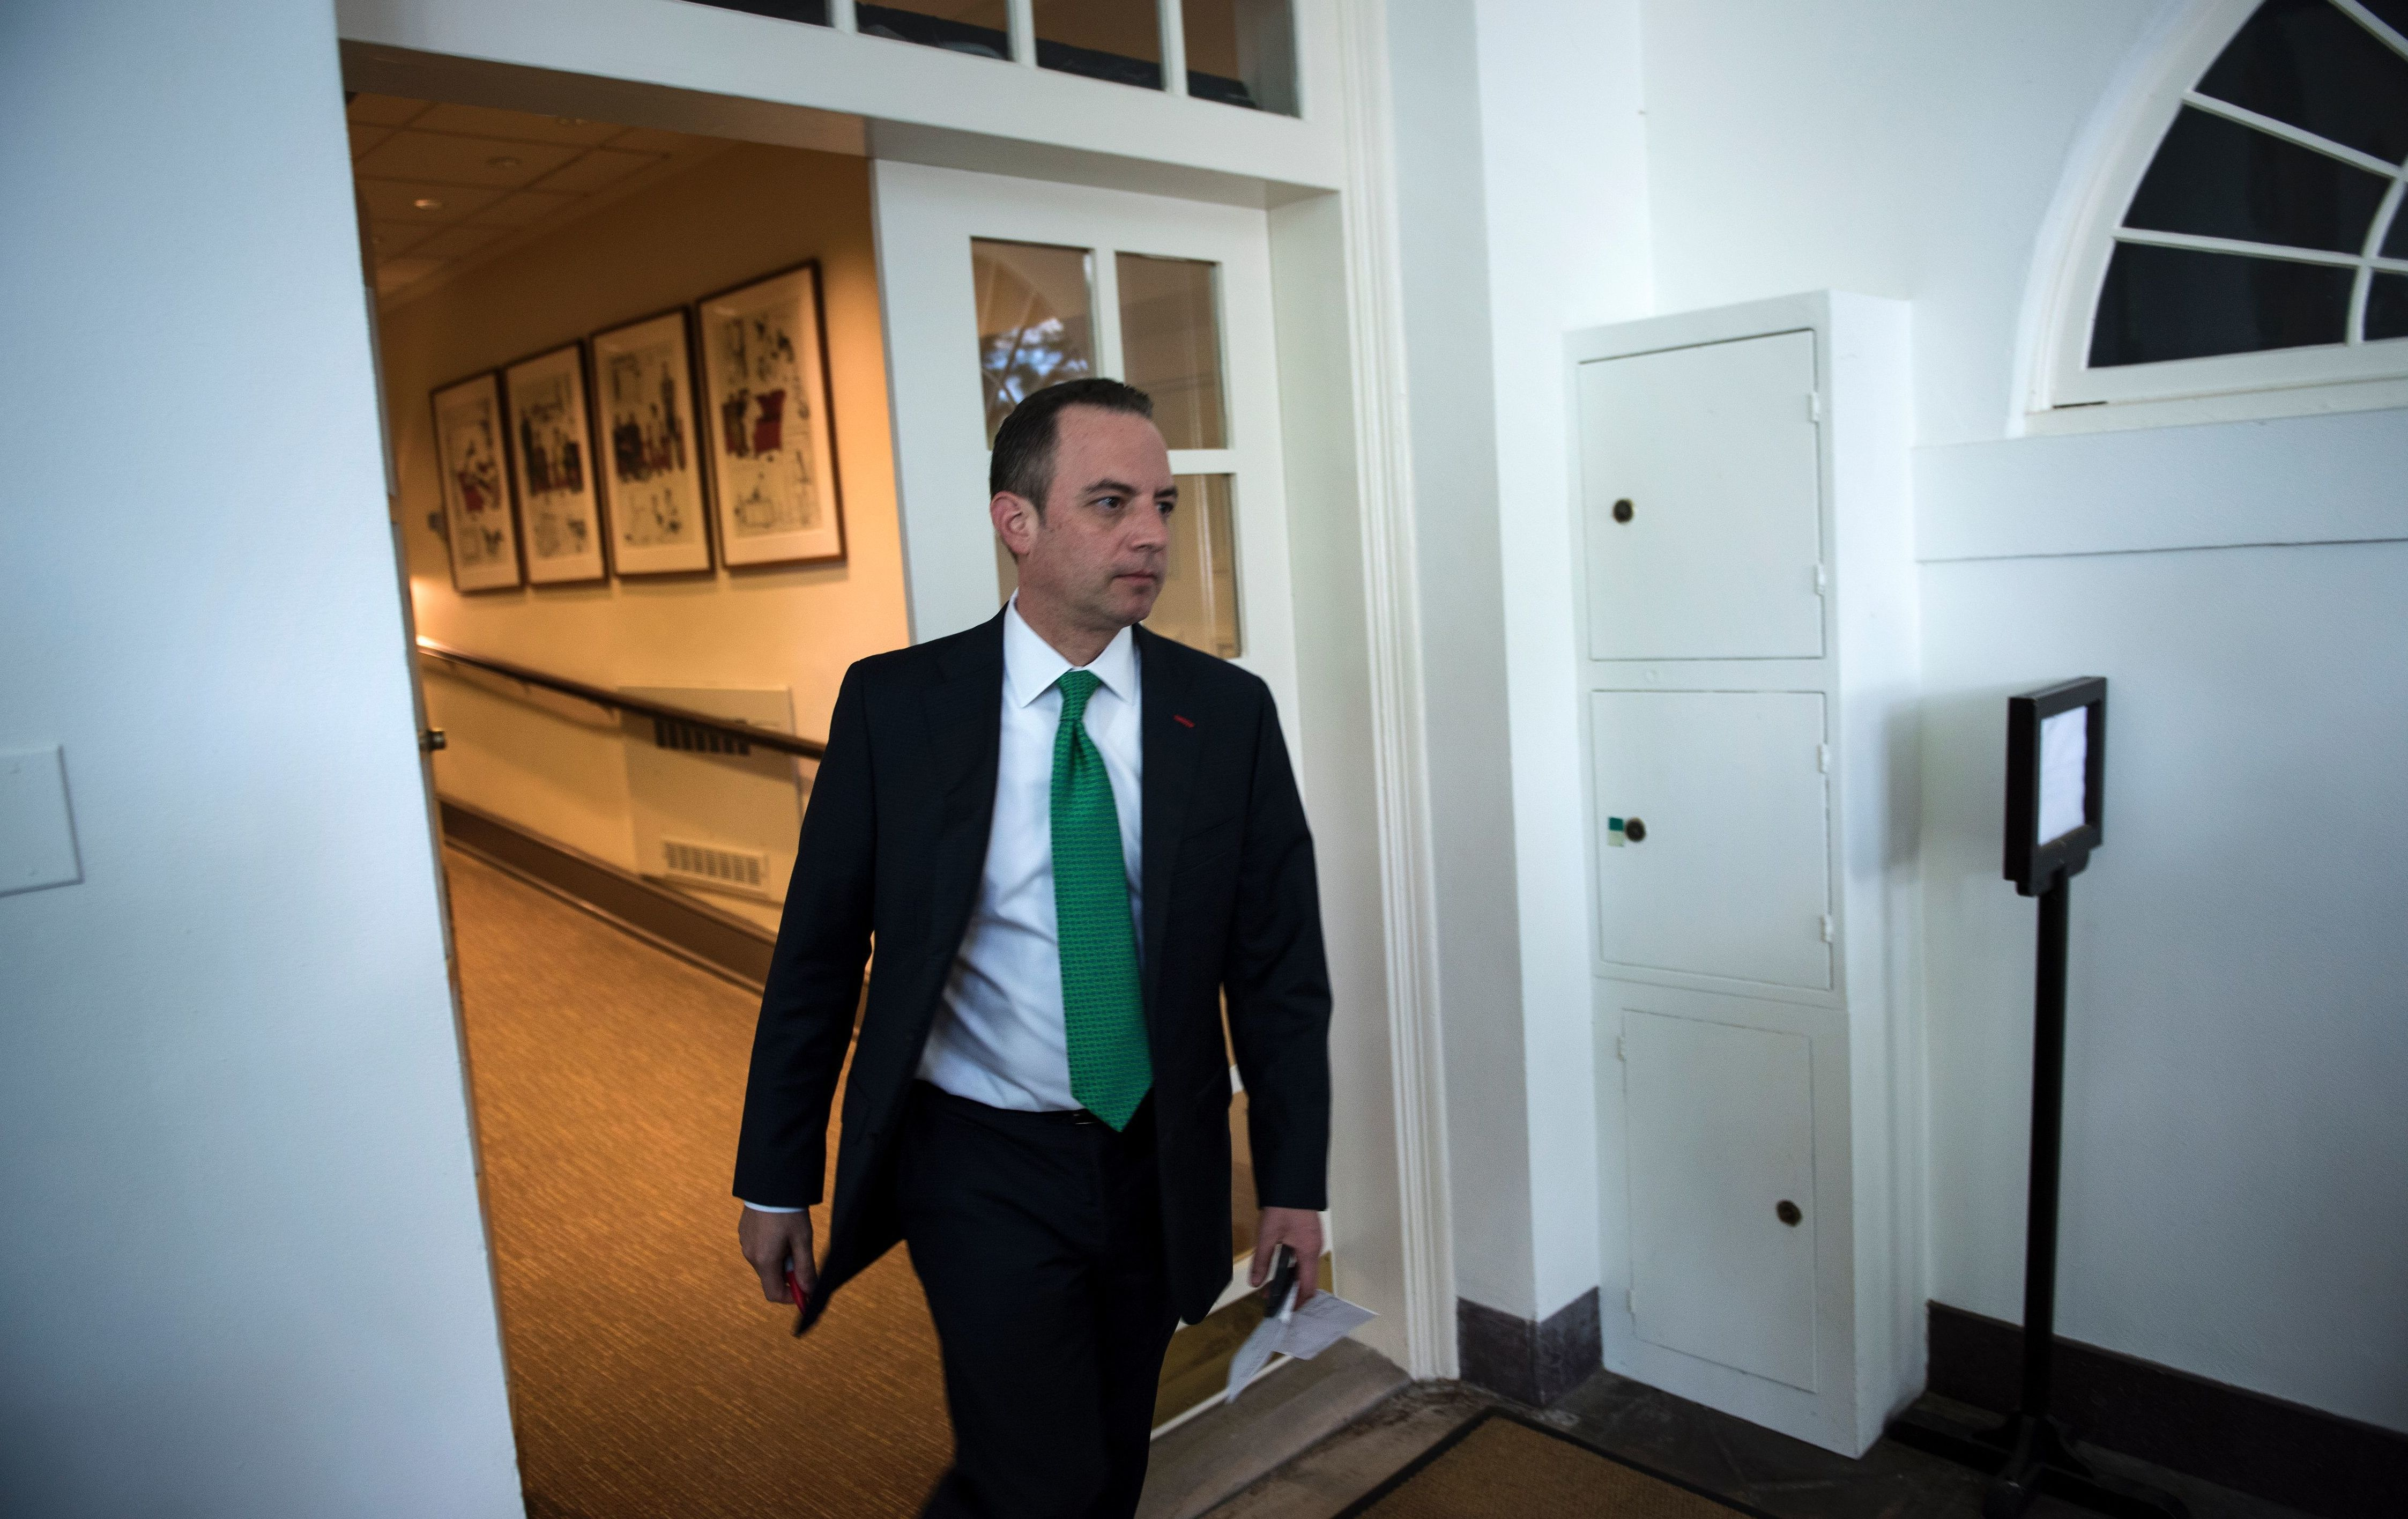 Trump Chief Of Staff Priebus Is Out — In Biggest White House Staff Shake-Up Yet